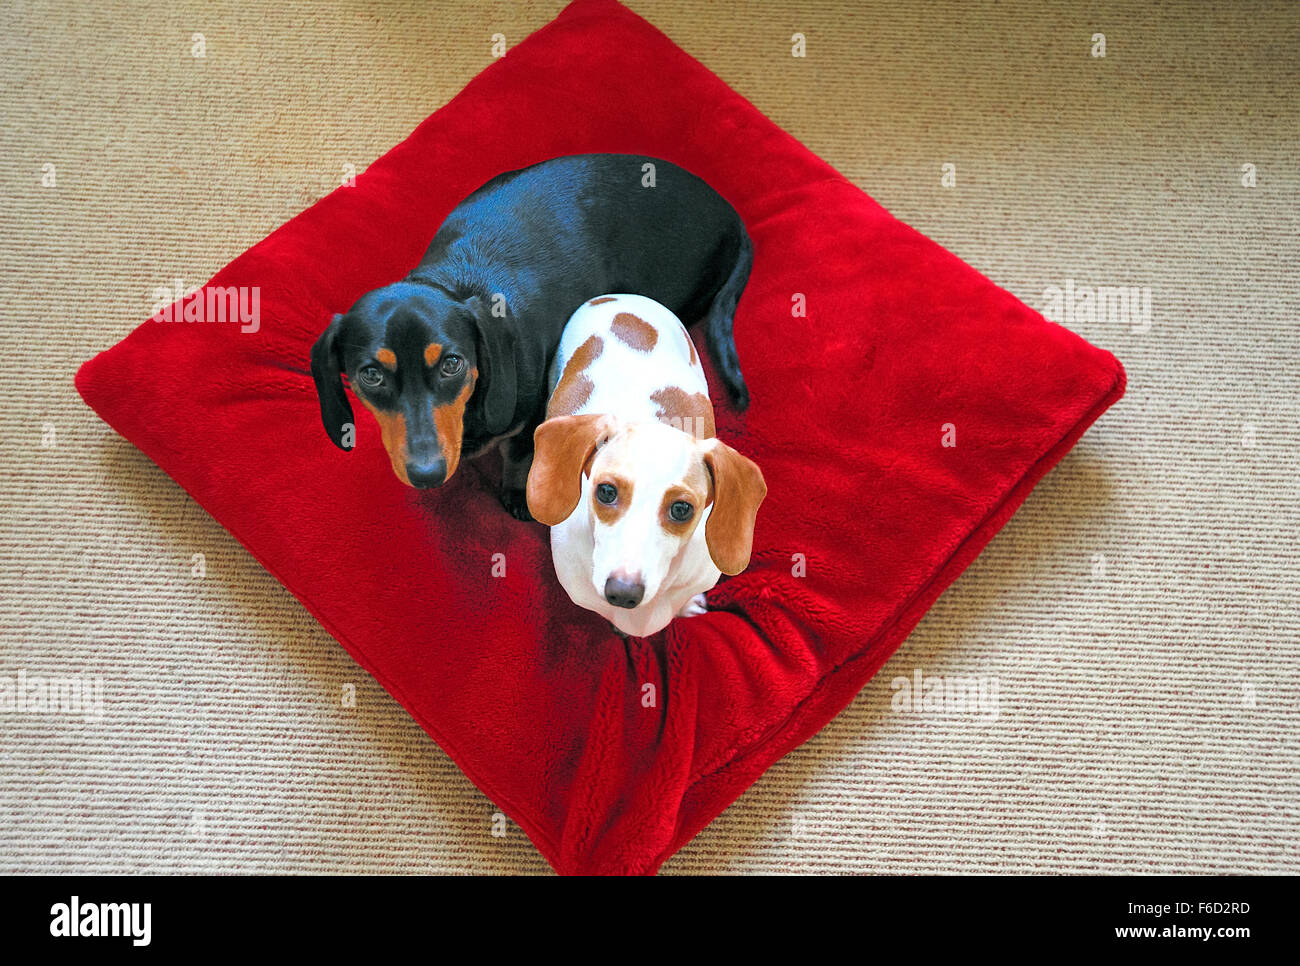 Two young dachshunds on a red pillow looking up - Stock Image